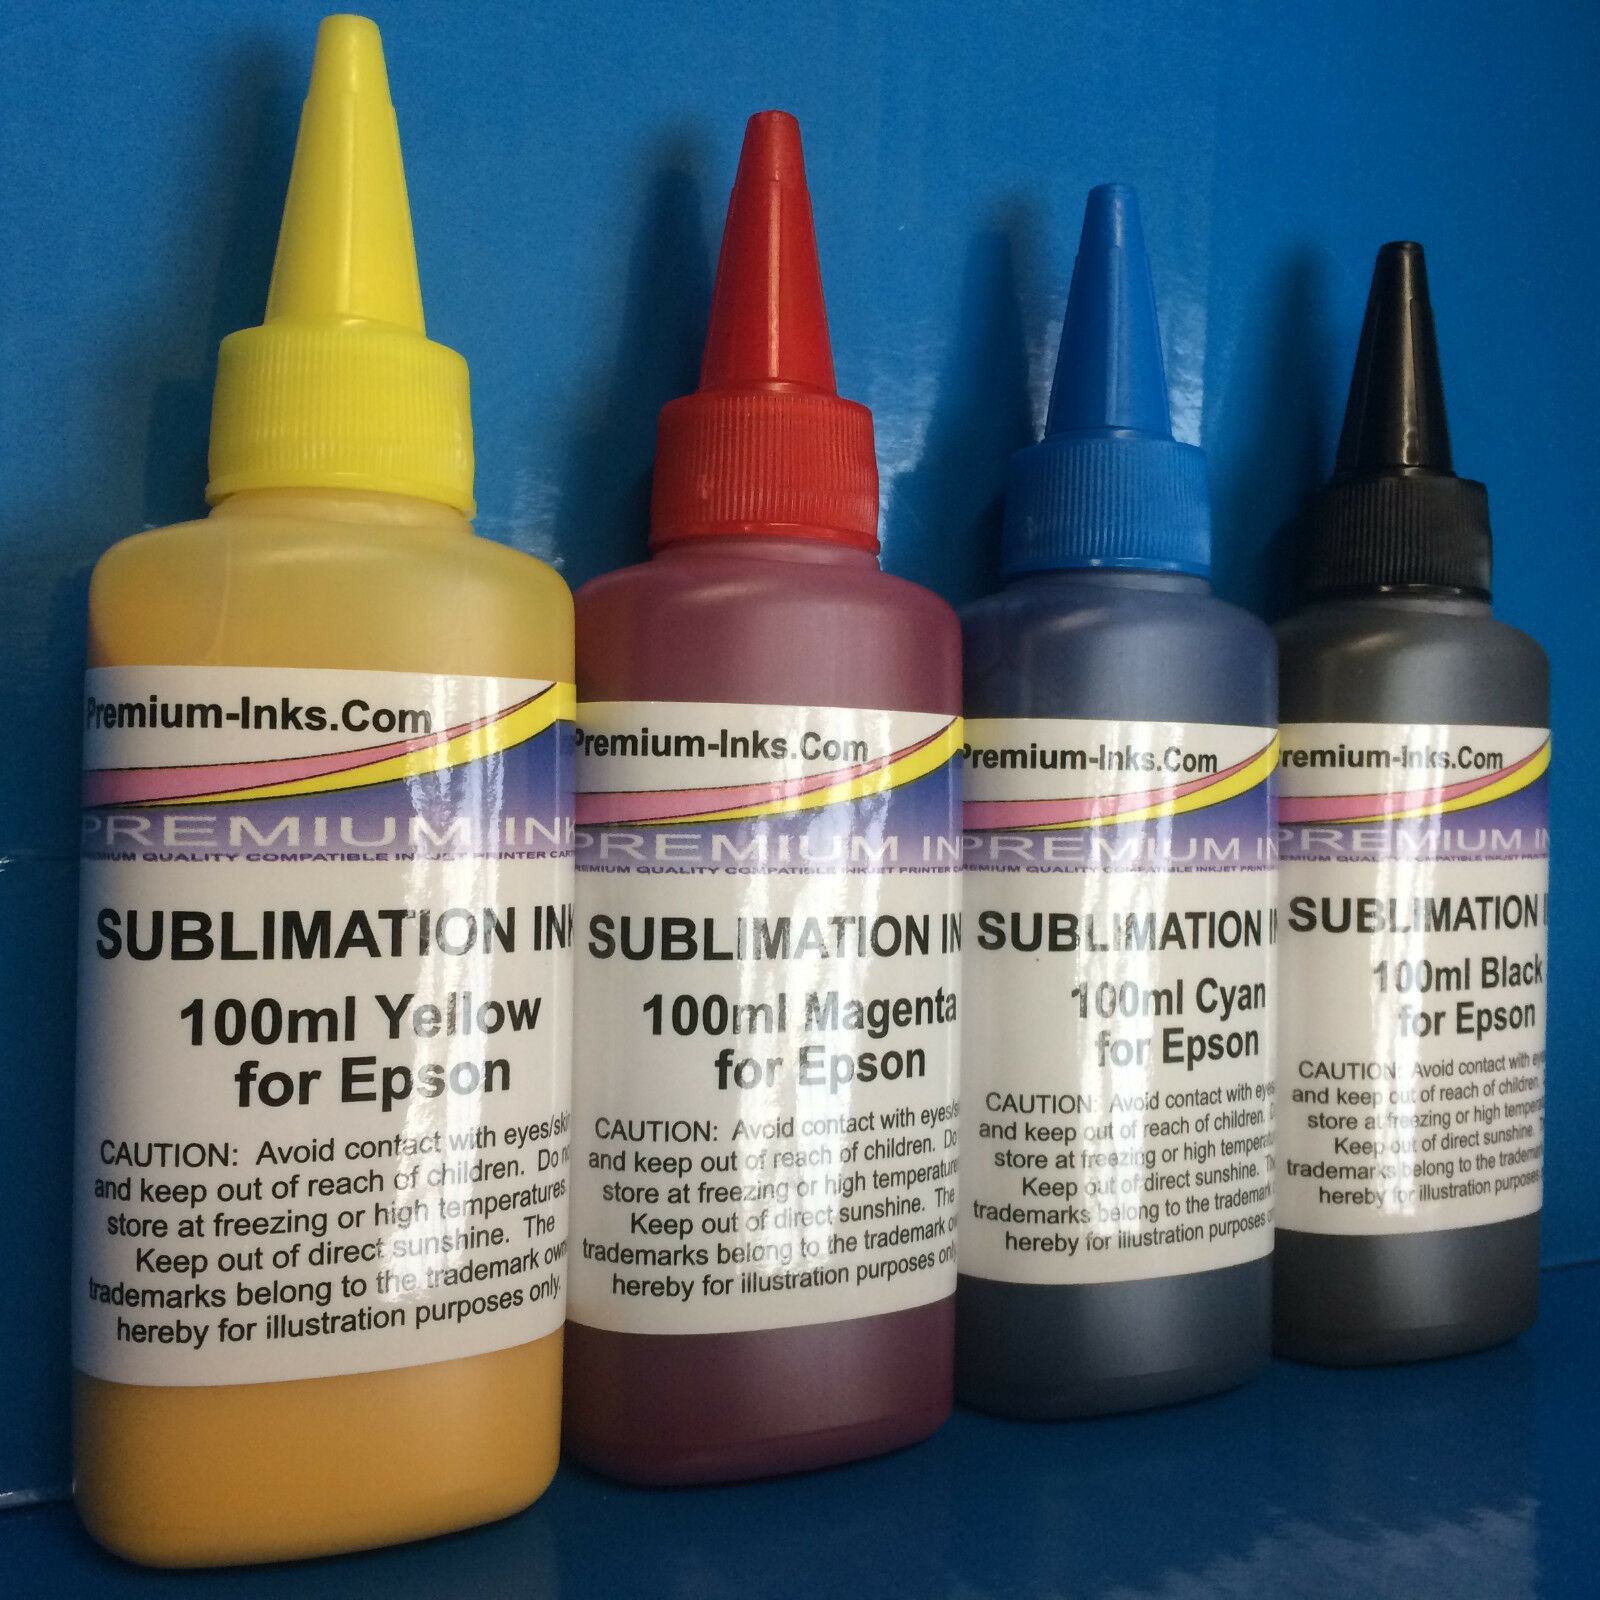 400ml Dye Sublimation Ink For Epson Workforce Wf 7715dwf 7720dtwf Tinta Sun Refill Kit Hp Black And Colour 1 Of 4free Shipping